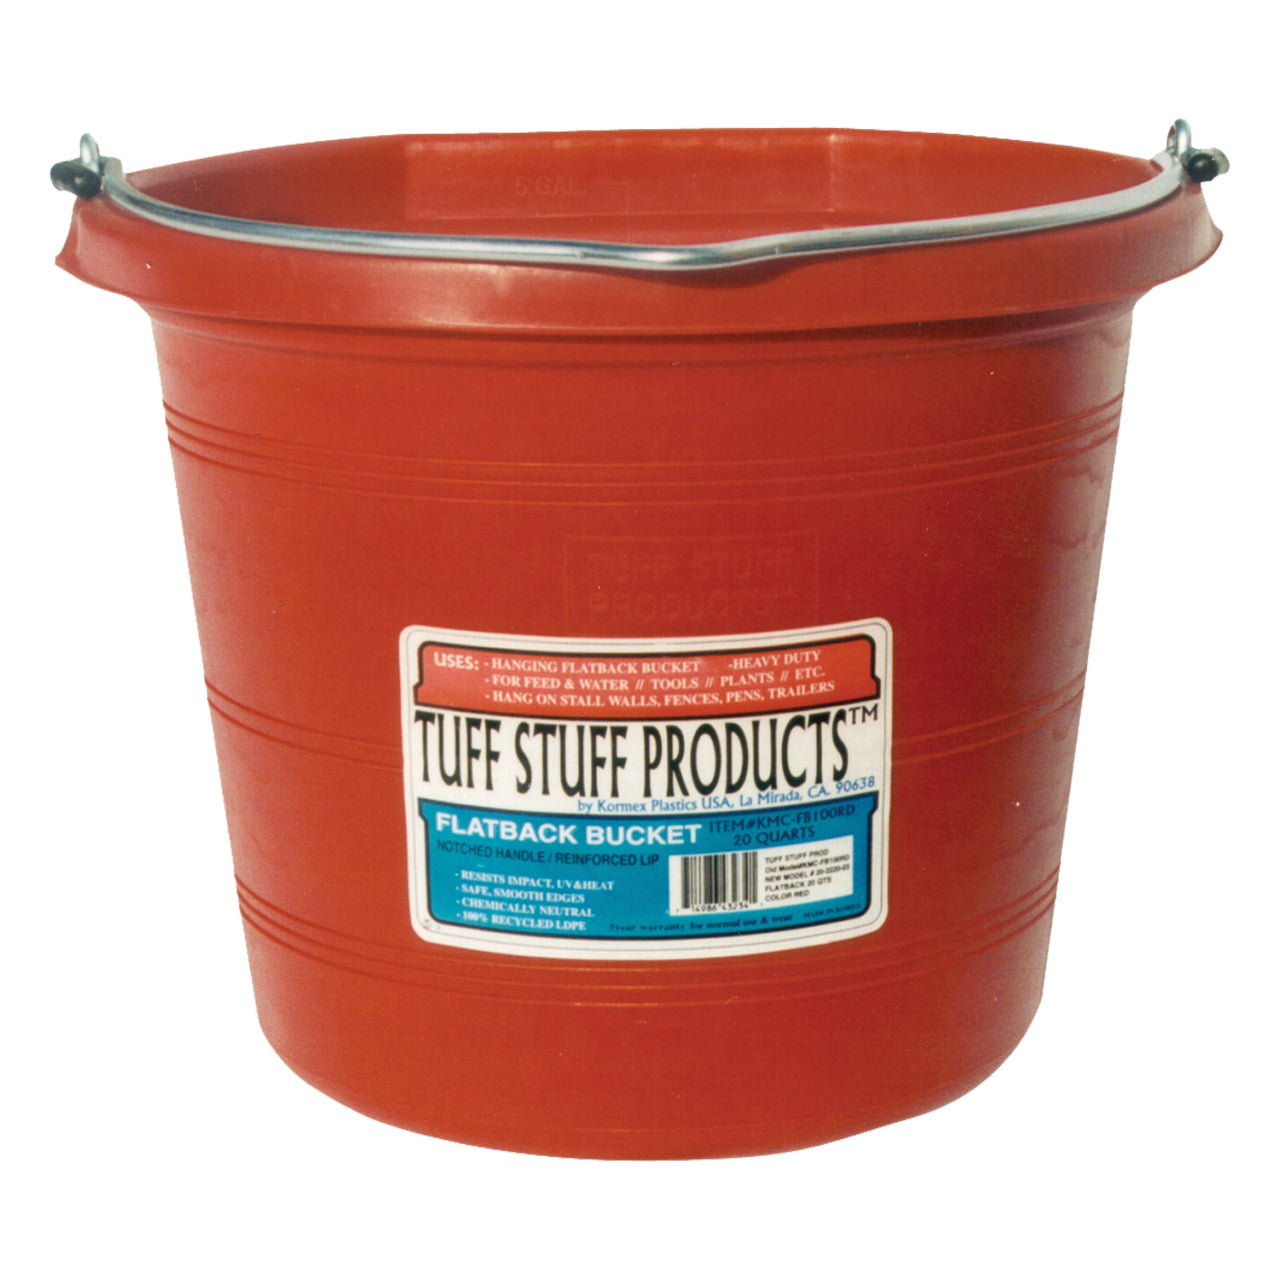 Tuff Stuff Flat Back Pail 20 Qts (Red) - Buckets Pails Feeders Scoops Tubs Bottles Tuff Stuff - Canada